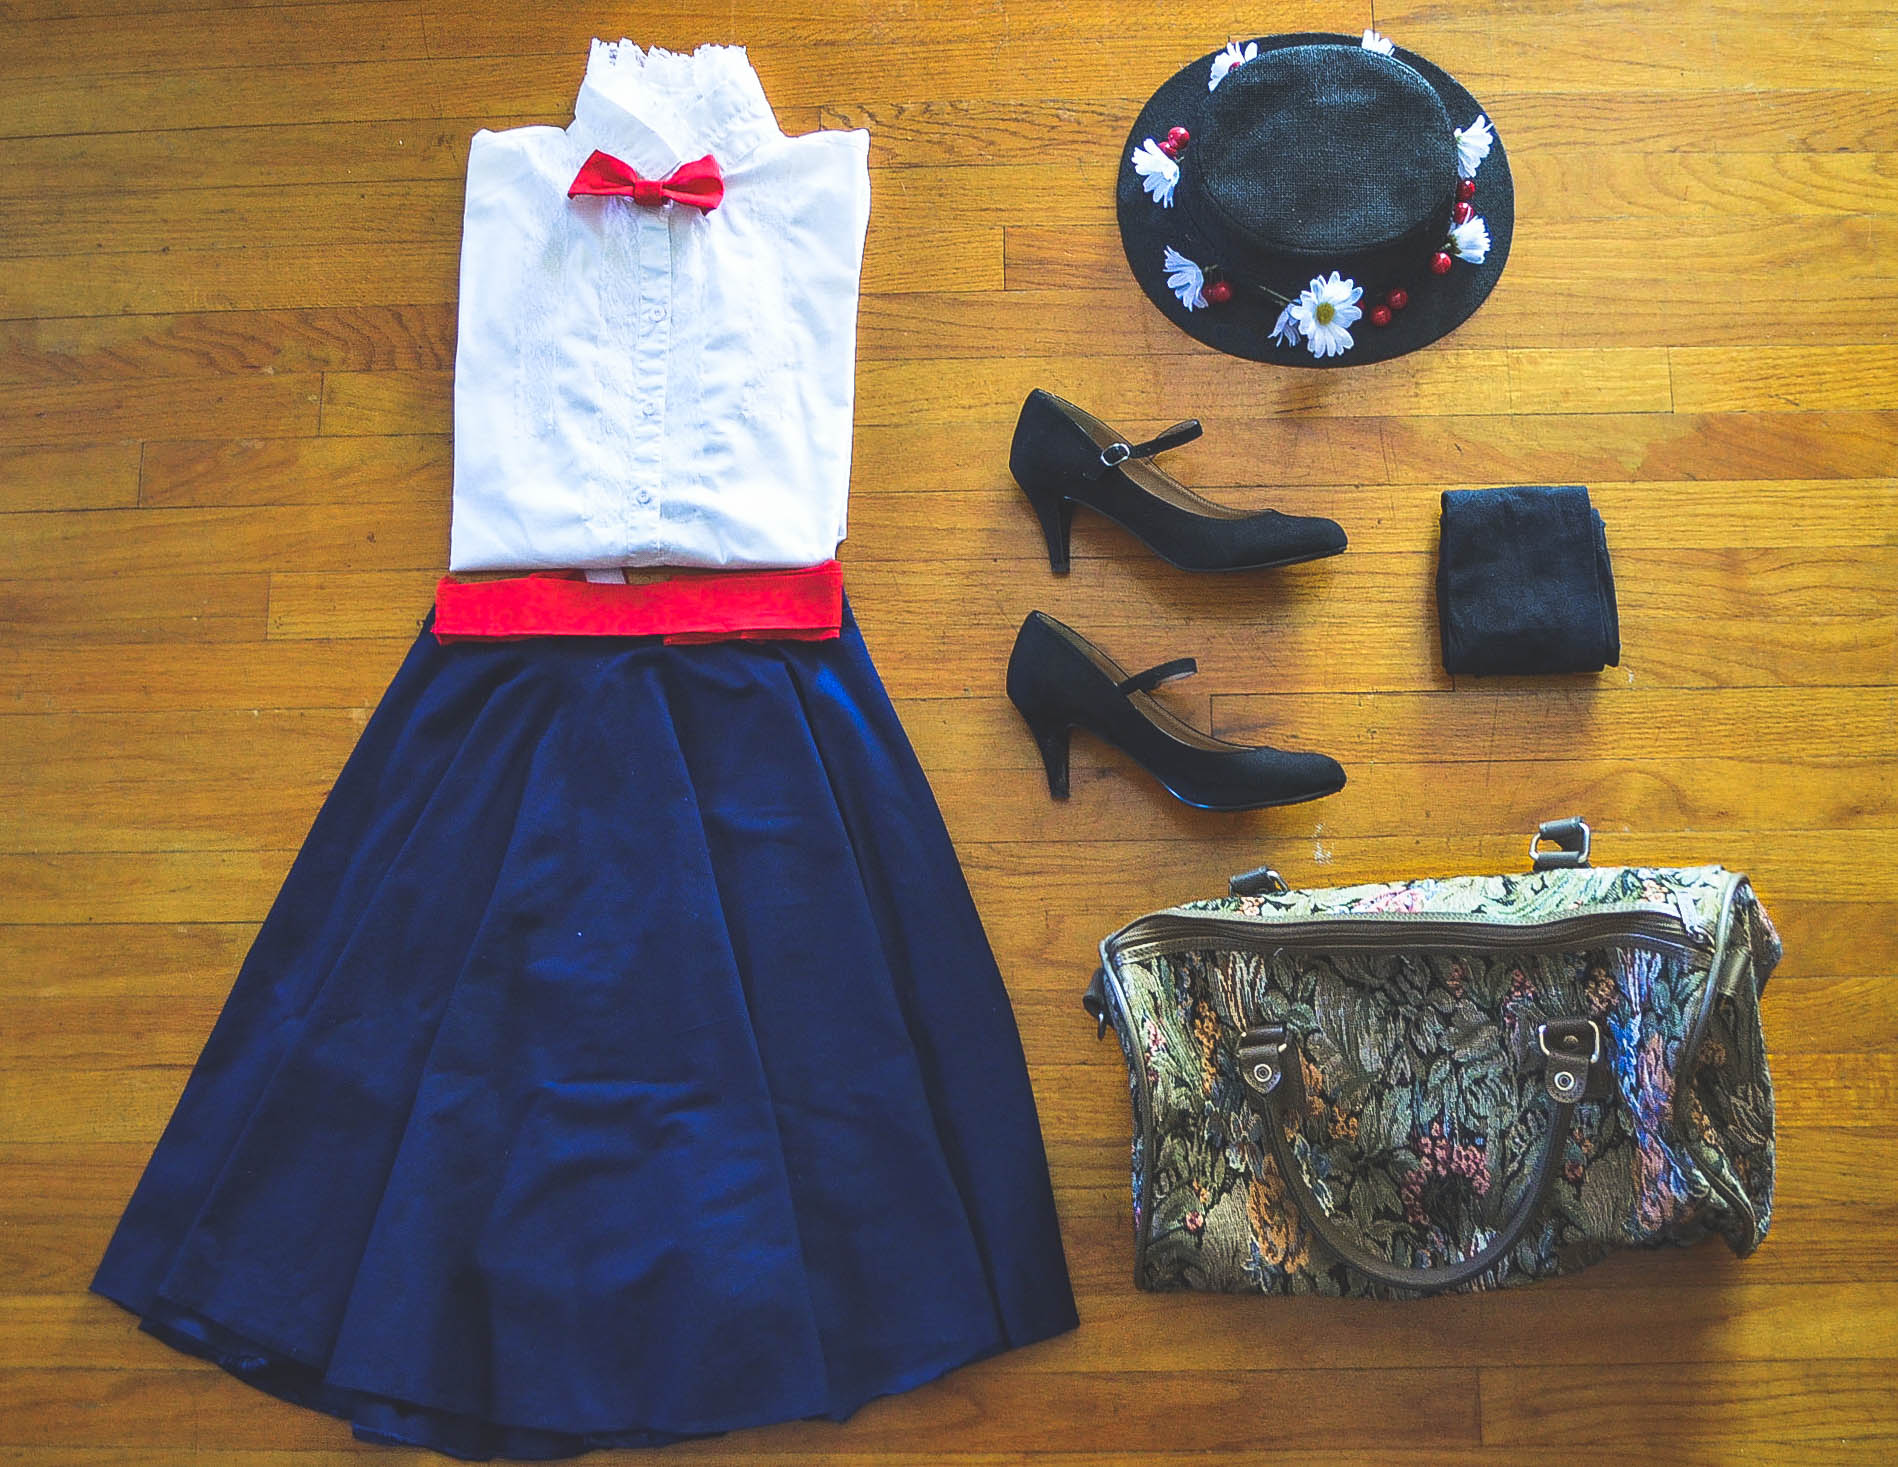 Dresses skirts clothes women disney store -  Looks And Dress Just Like Her Dinah Cardenas Shows Off Her Diy Disney Inspired Look That Is Described In One Word Supercalifragilisticexpialidocious